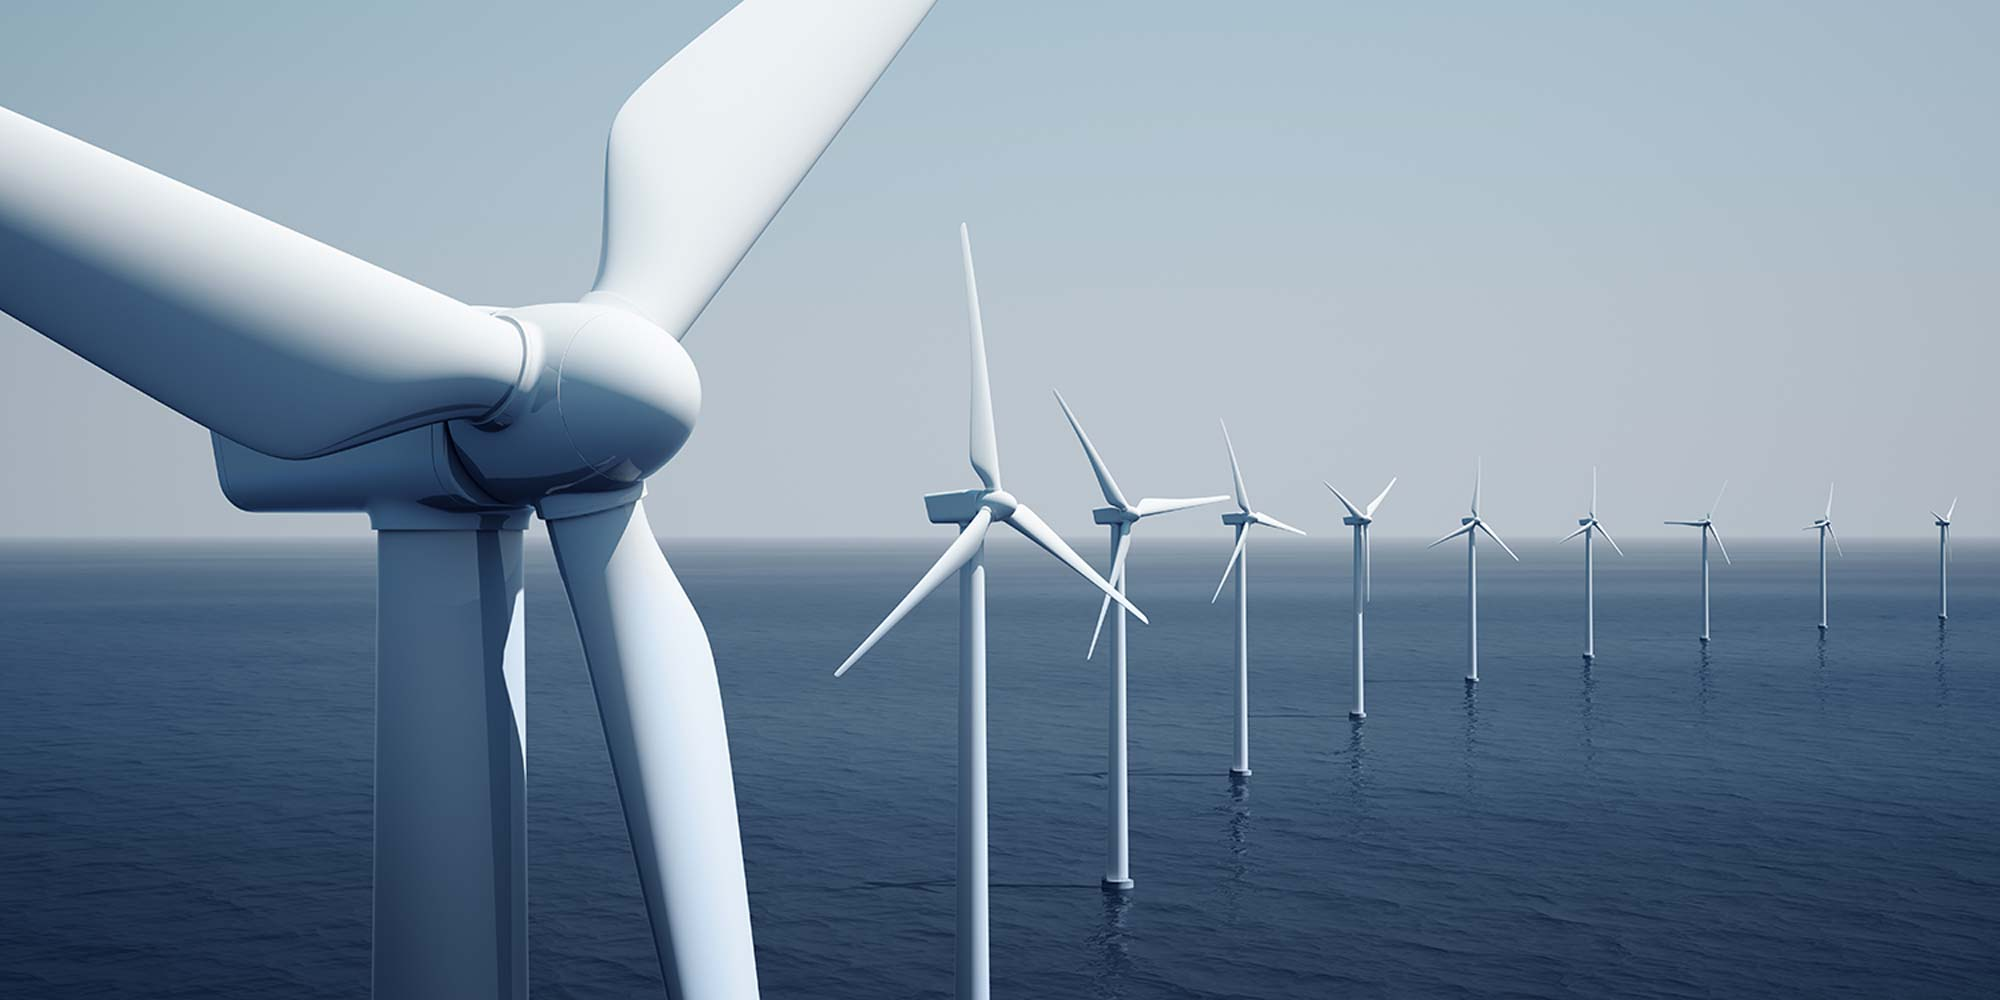 H V Wooding are supporting our customers in manufacturing world-class components in the Wind Energy, Solar & Hydro sectors.